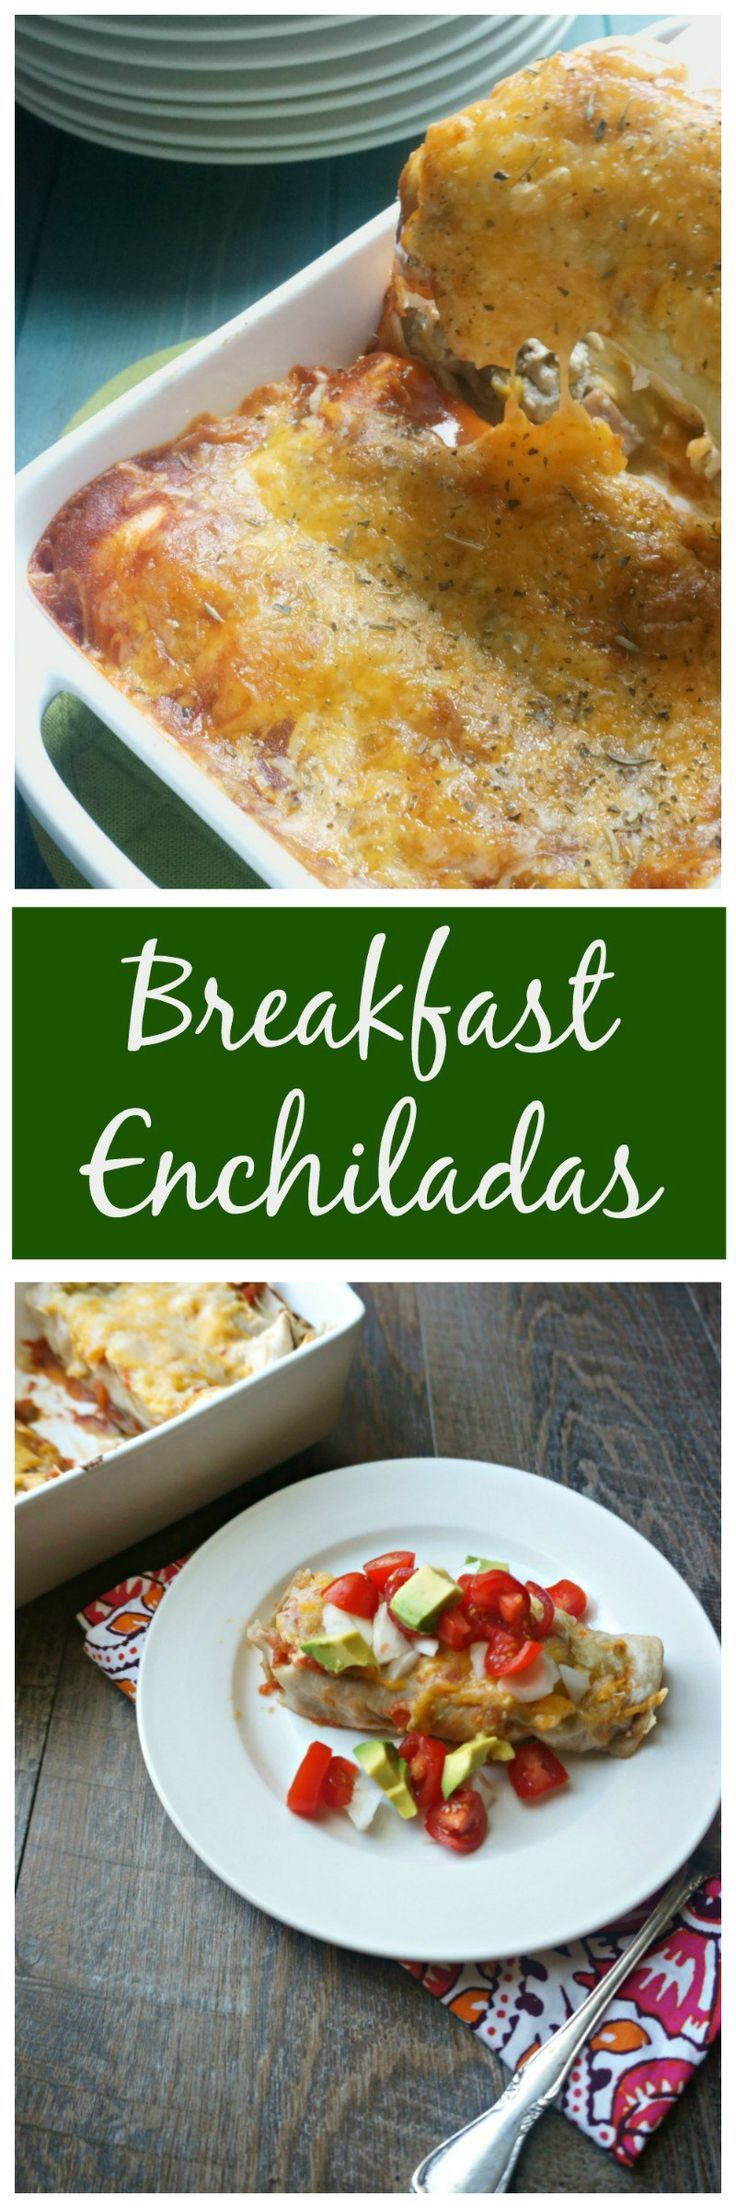 Breakfast Enchiladas: Fresh tortillas are filled with chorizo, scrambled eggs, black beans, and fire roasted corn and then smothered in homemade enchilada sauce and sharp cheese.